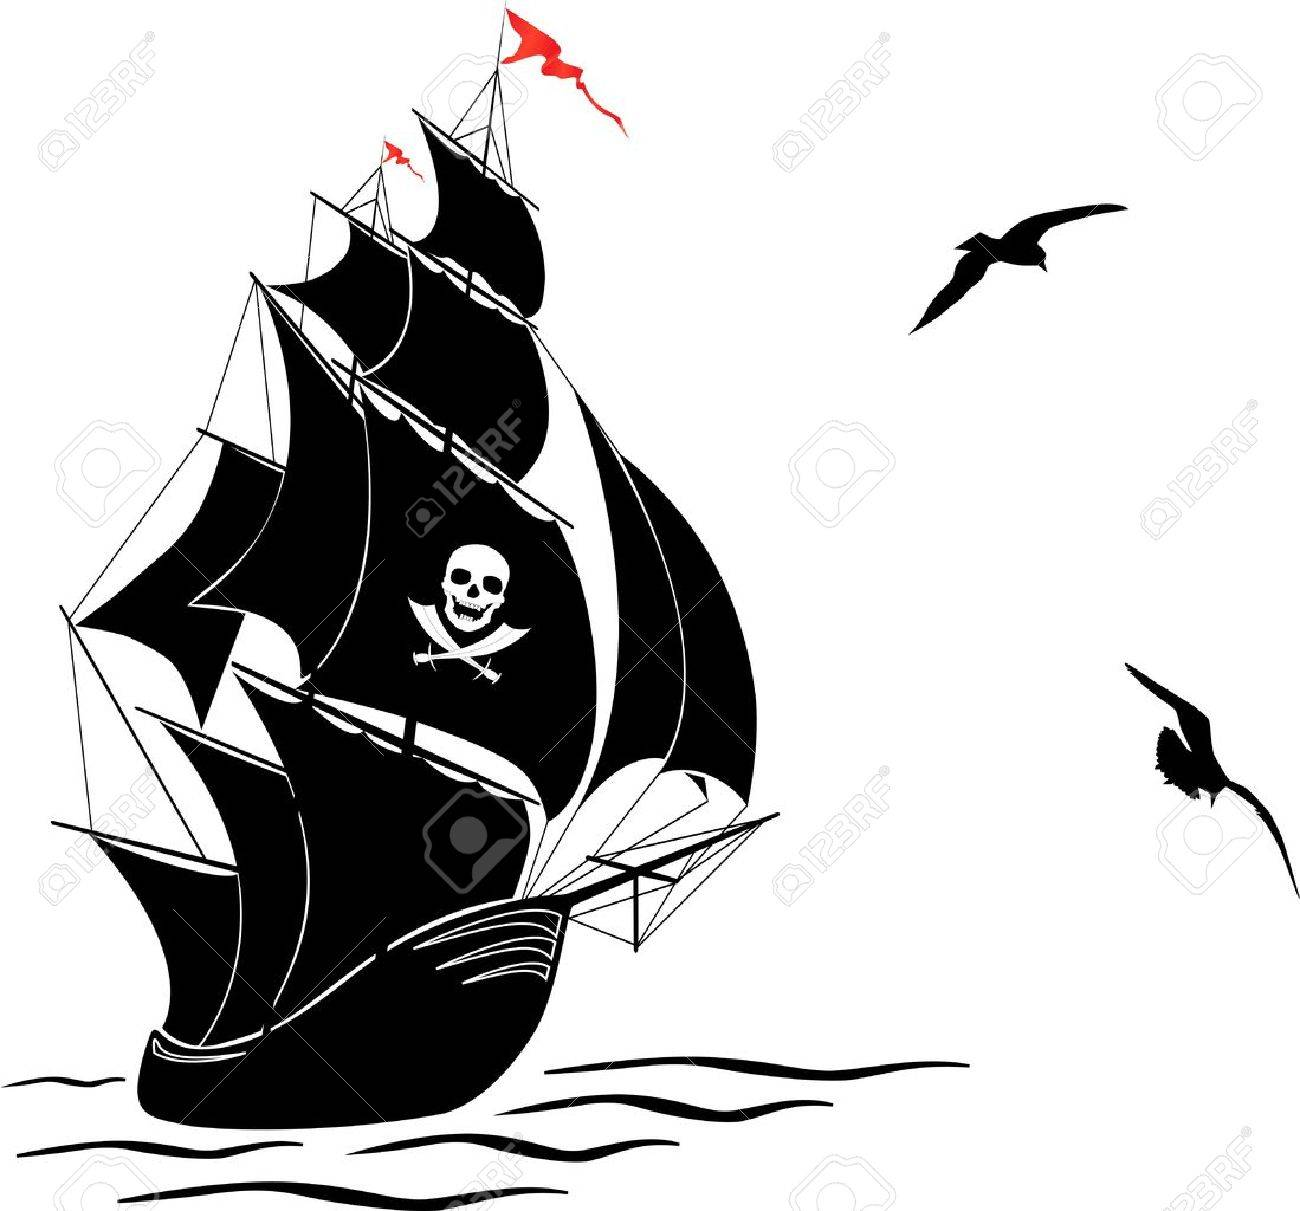 1300x1211 A Silhouette Of A Old Sail Pirate Ship And Two Gulls